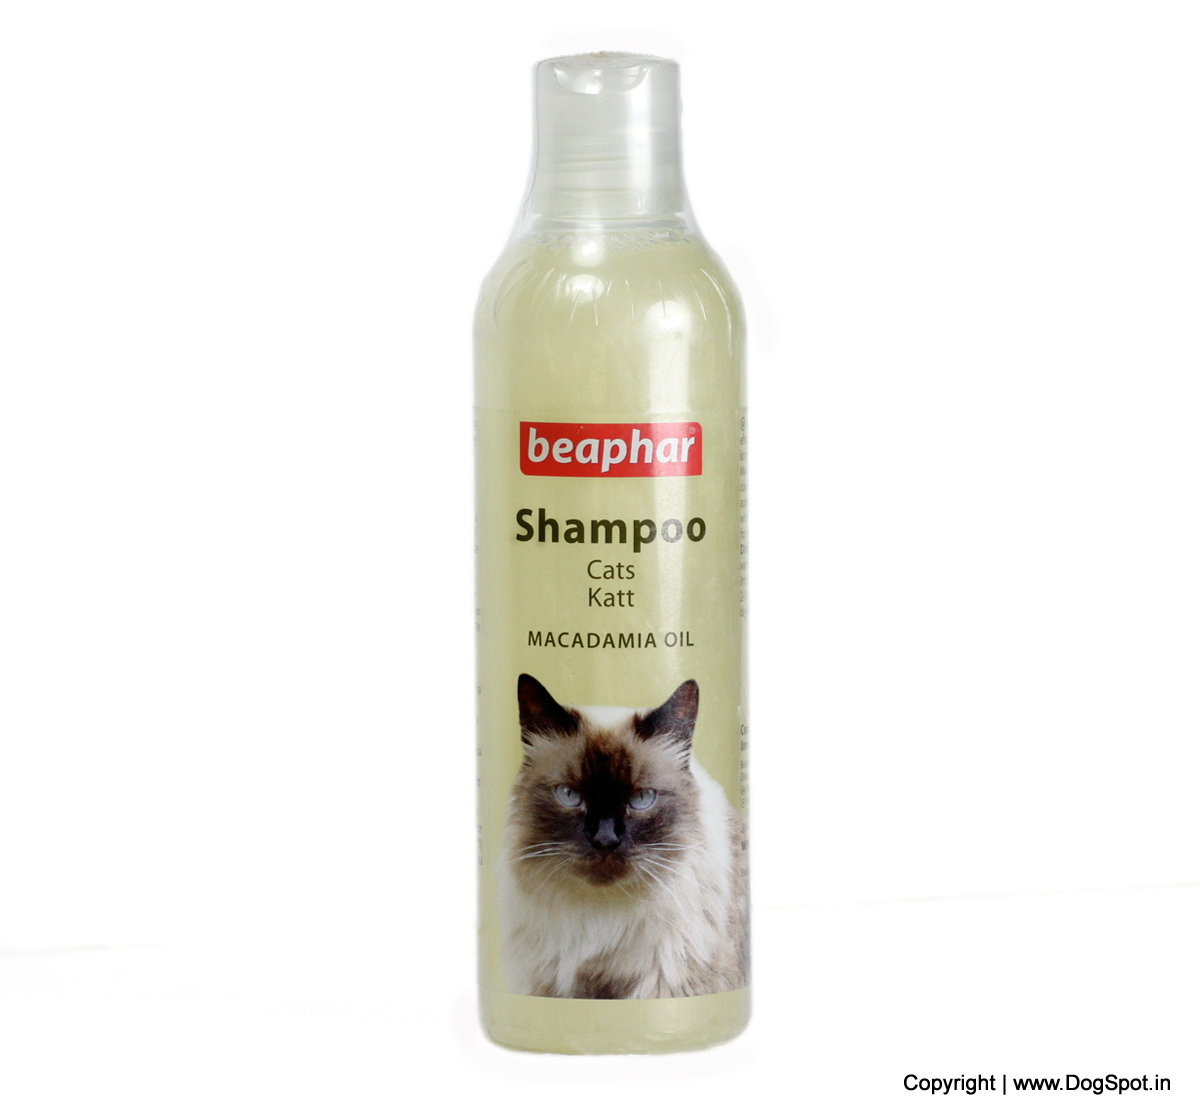 Beaphar Cat Shampoo Macadamia Oil - 250 ml